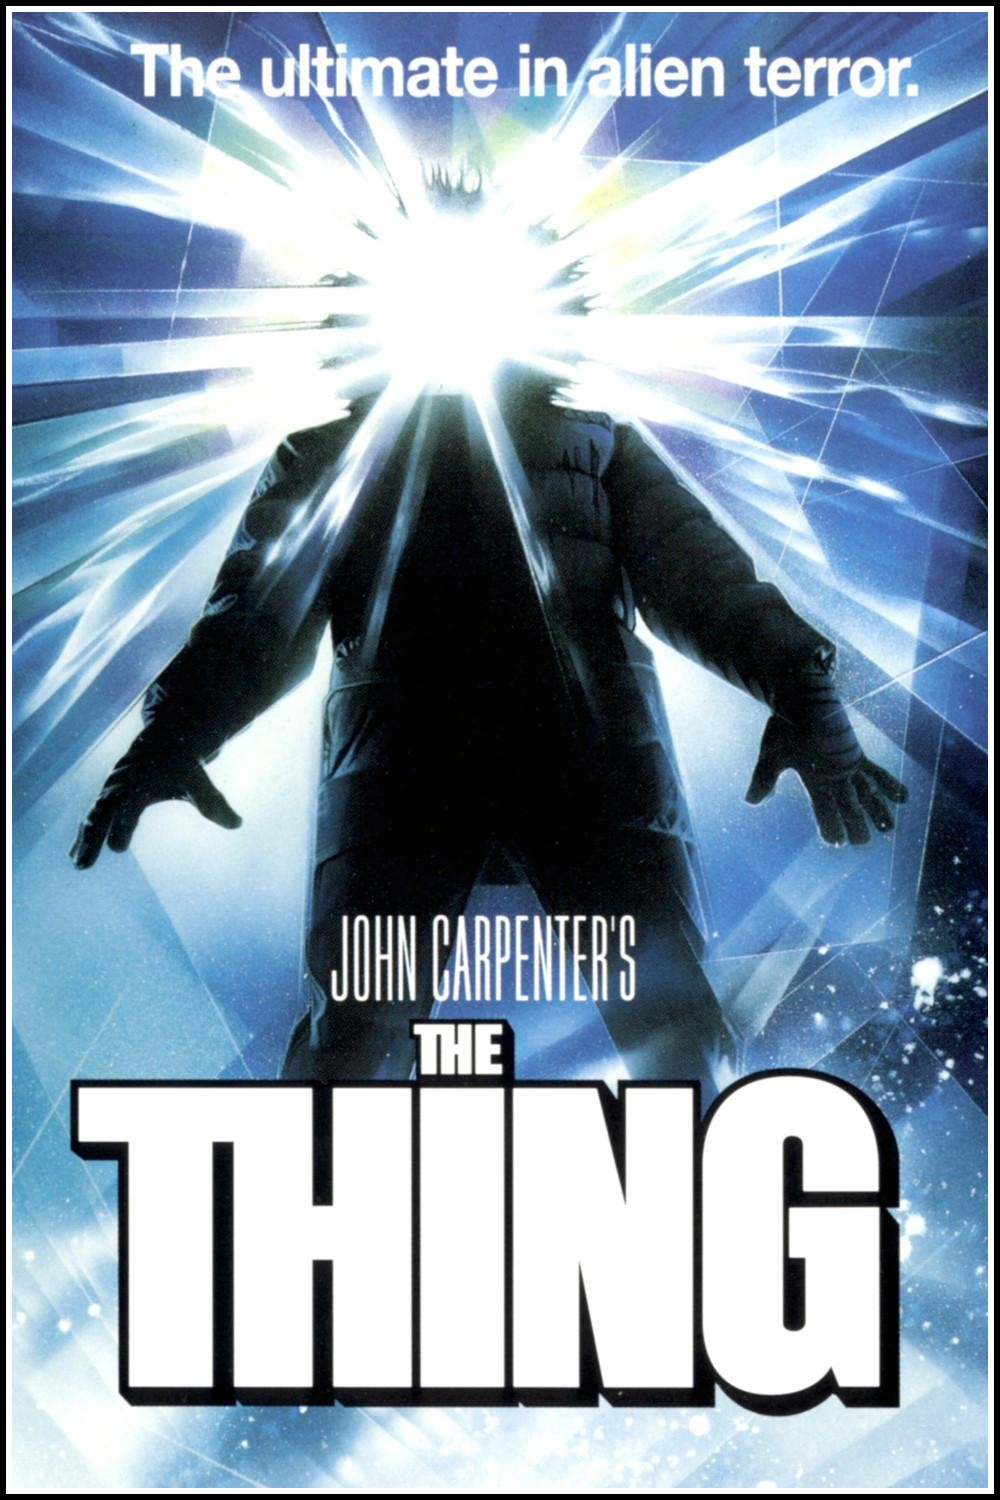 John Carpenter's The Thing (1982) | Roger Malcolm